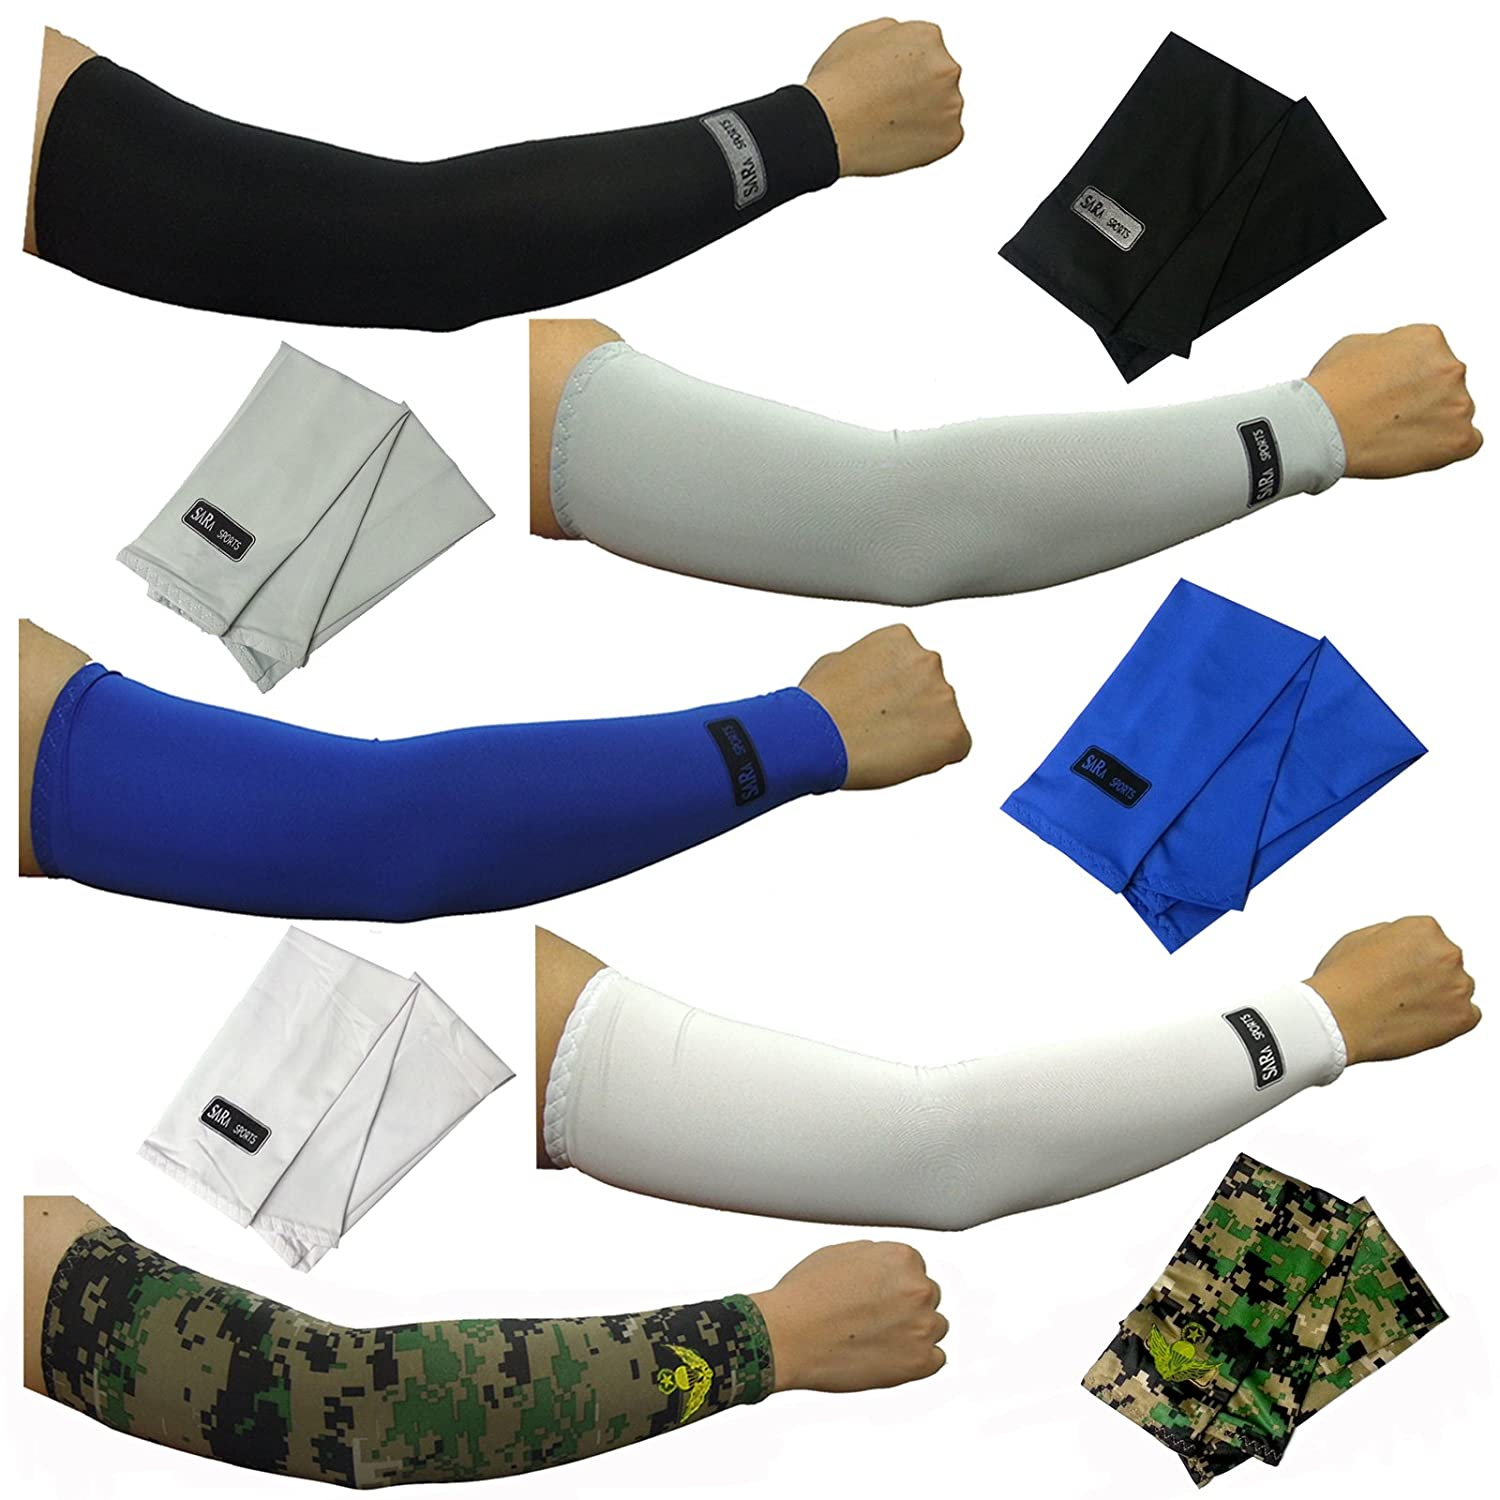 dulcefox 5pairs Arm Sleeves Set Cooling Athletic Sport Skins Sun Protective UV Cover camo MT